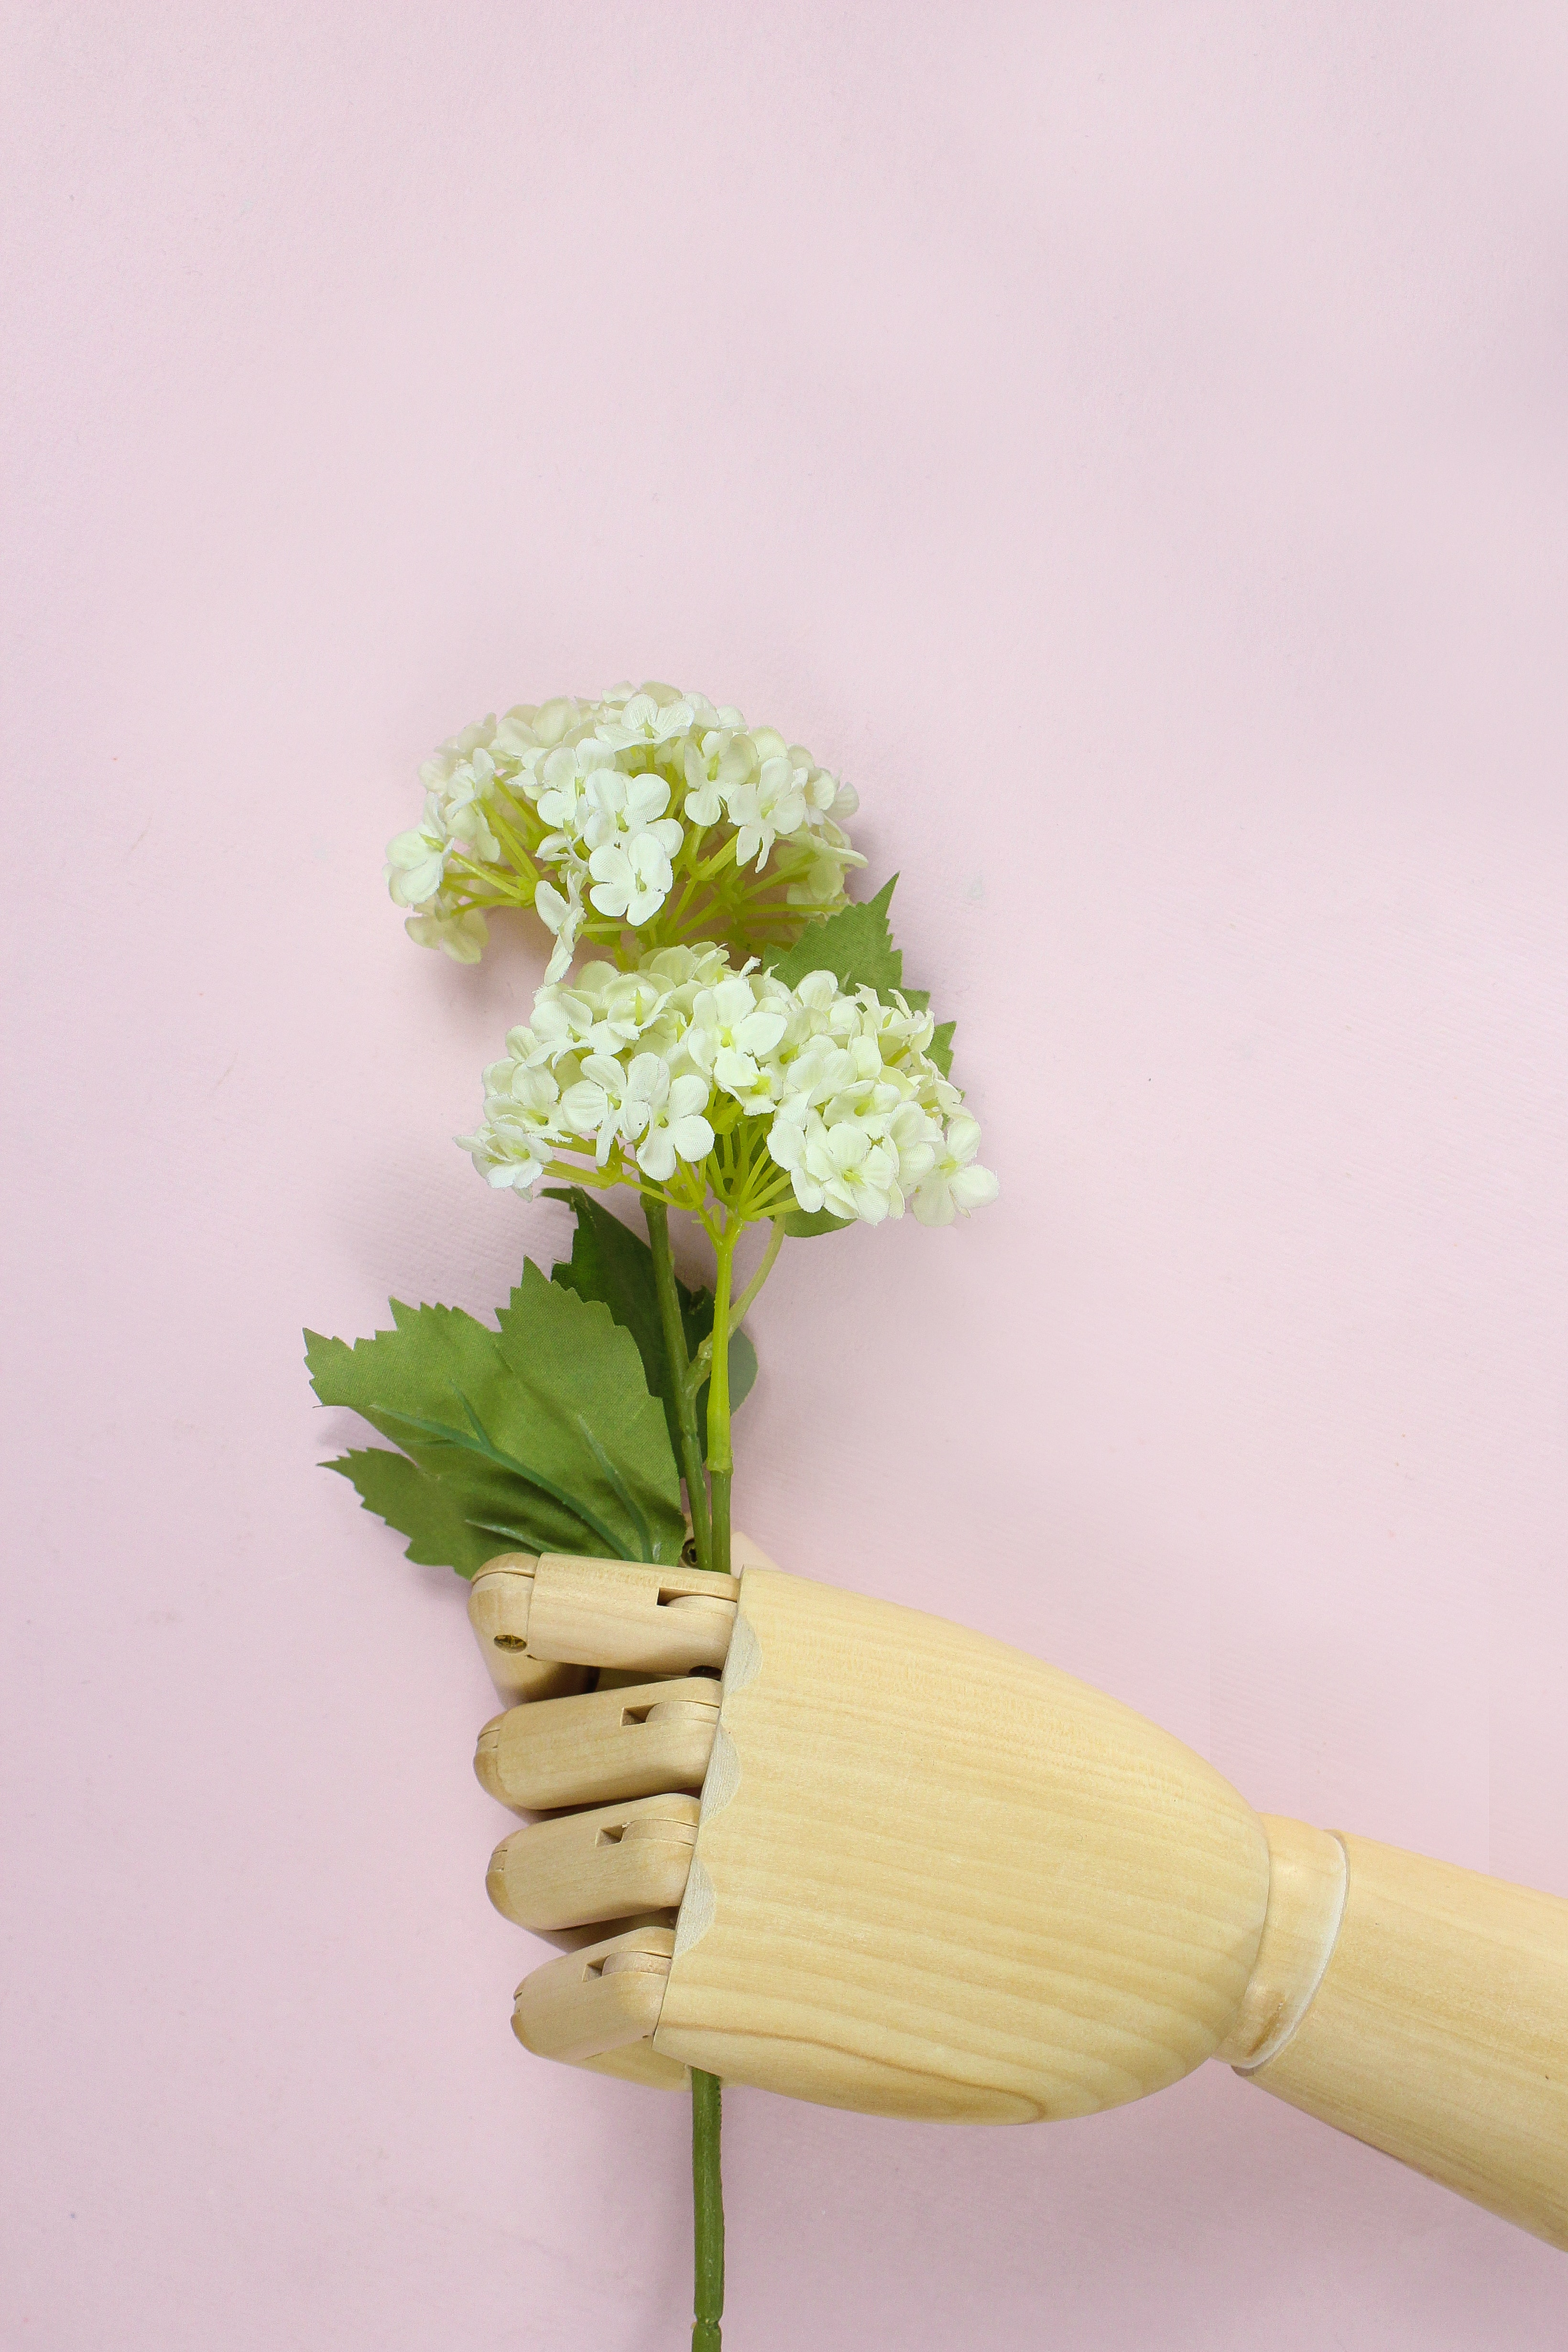 Brown Wooden Hand Holding White Hydrangea Flowers Free Stock Photo